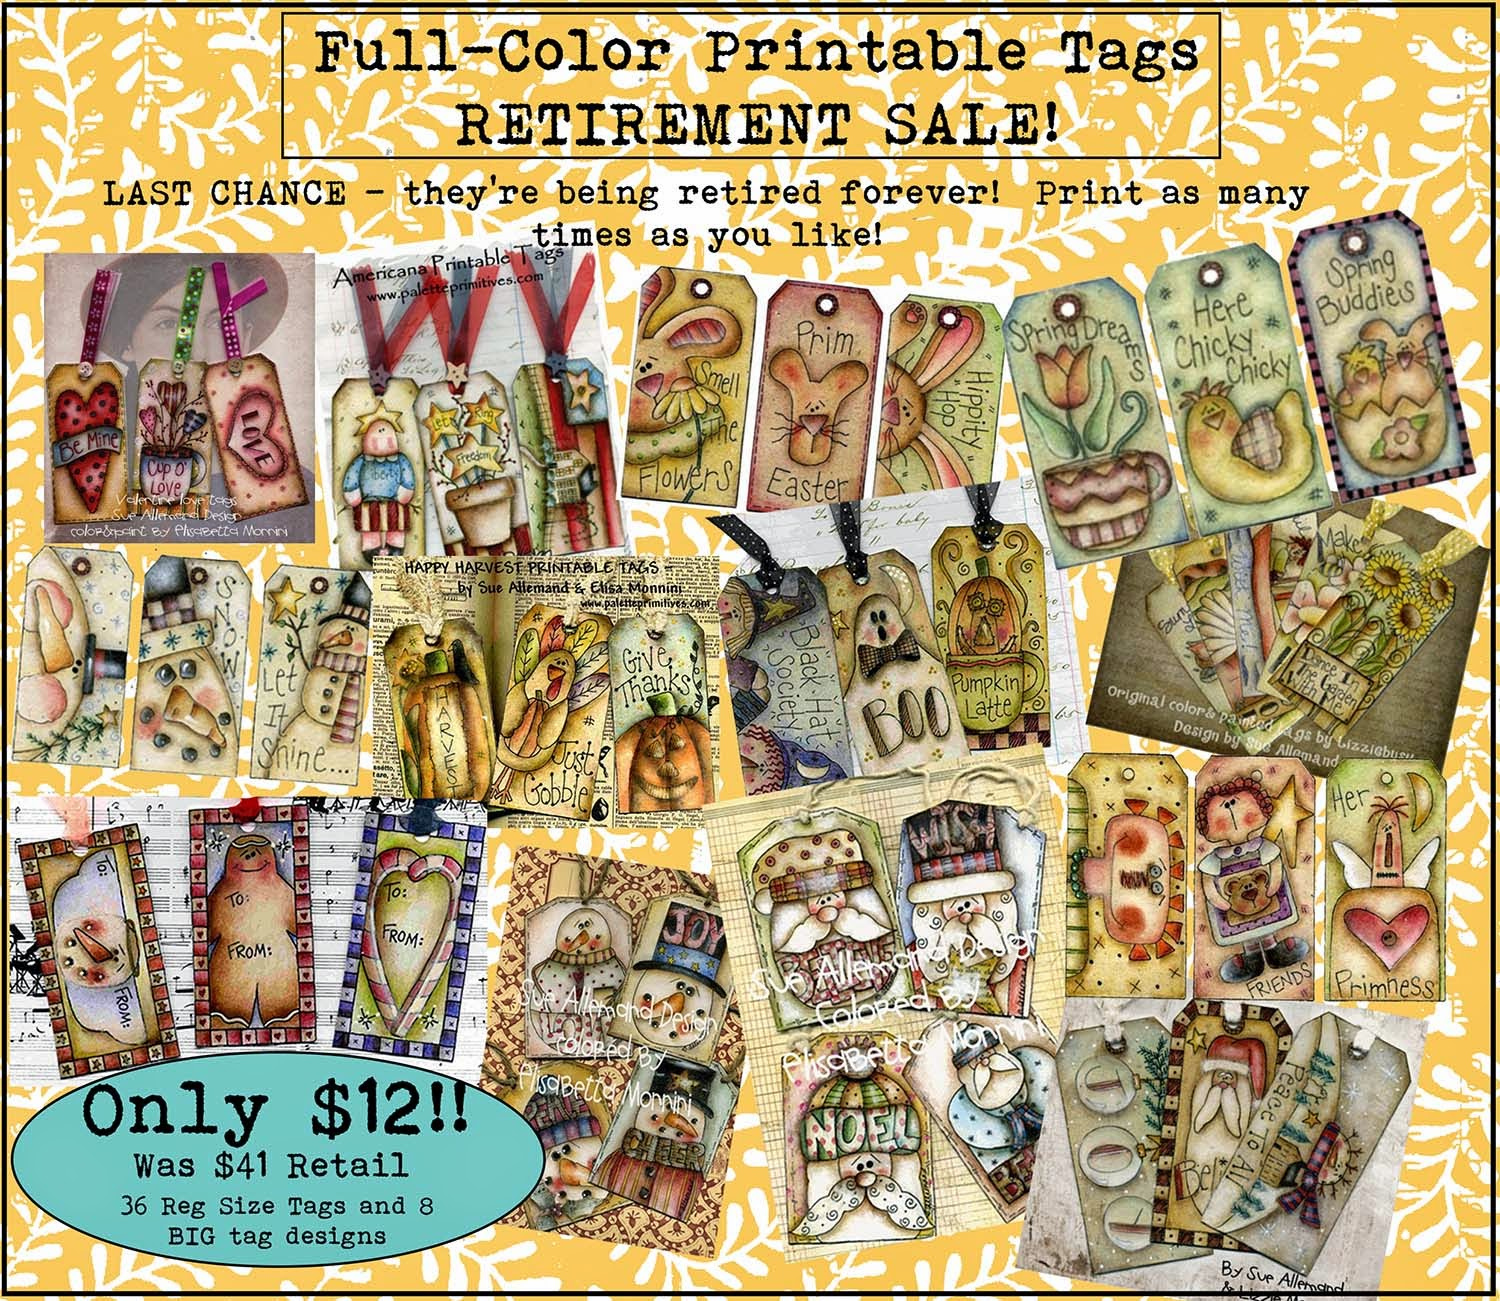 Printable Tags Retirement Sale, Sue Allemand, Elisabetta Monnini